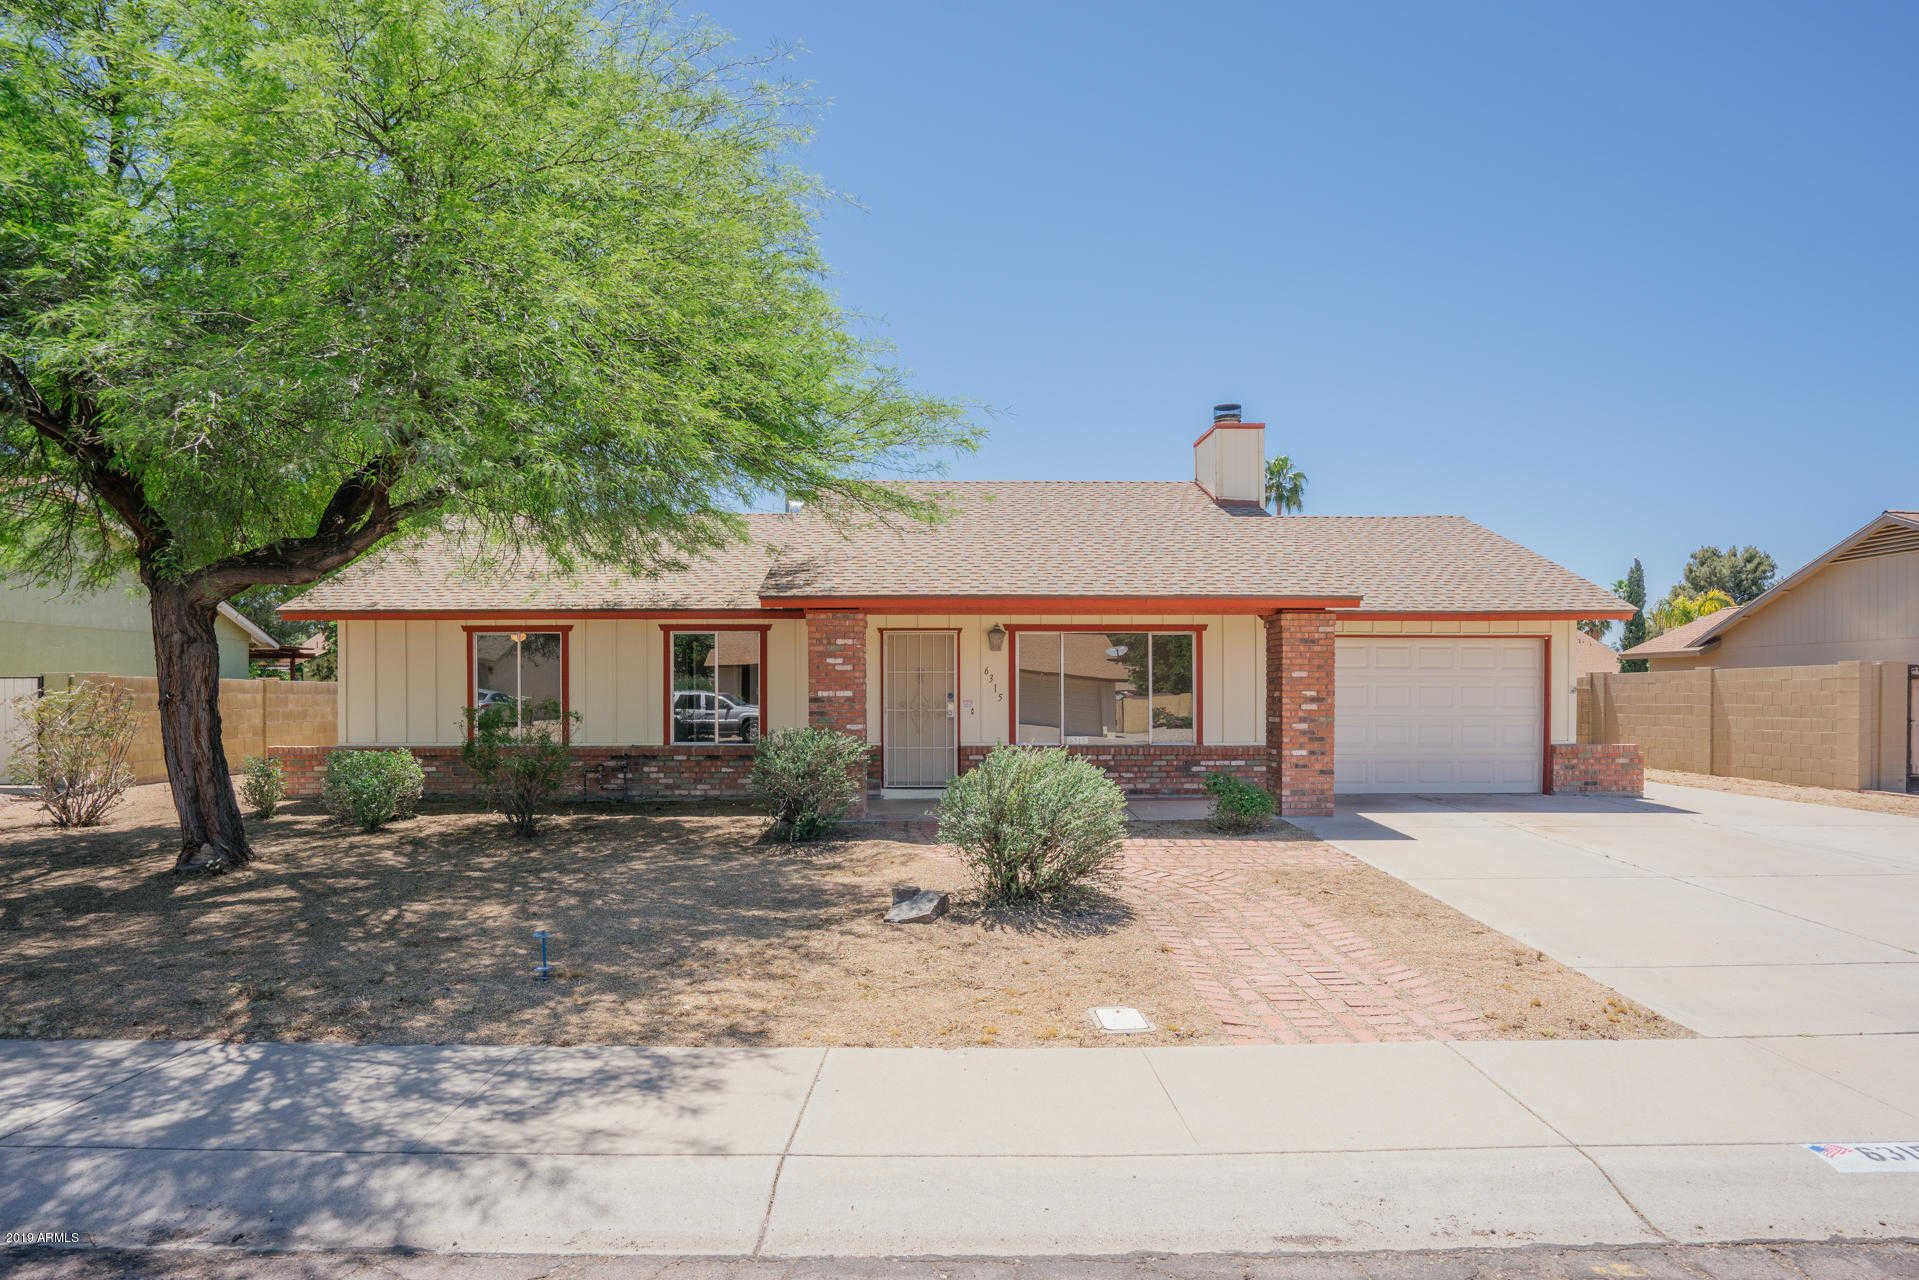 $226,000 - 3Br/2Ba - Home for Sale in Copperwood Unit 4 Lot 313-440, Glendale